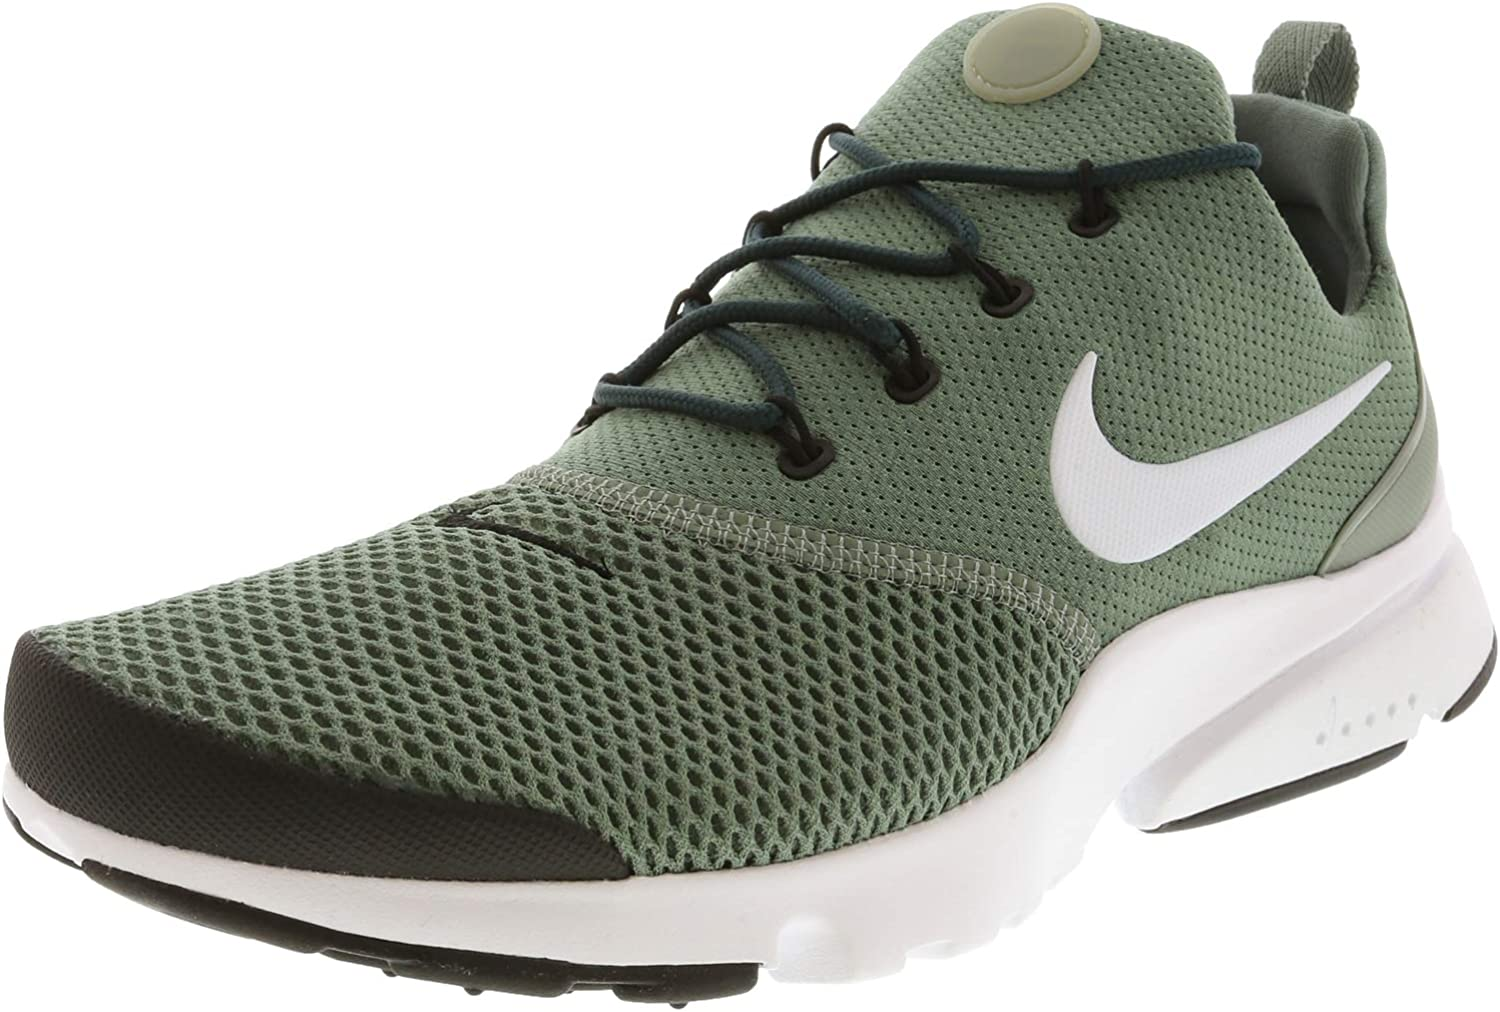 Nike Presto Fly Mens Running Trainers 908019 Sneakers shoes (UK 6 US 7 EU 40, Clay Green White Black 303)